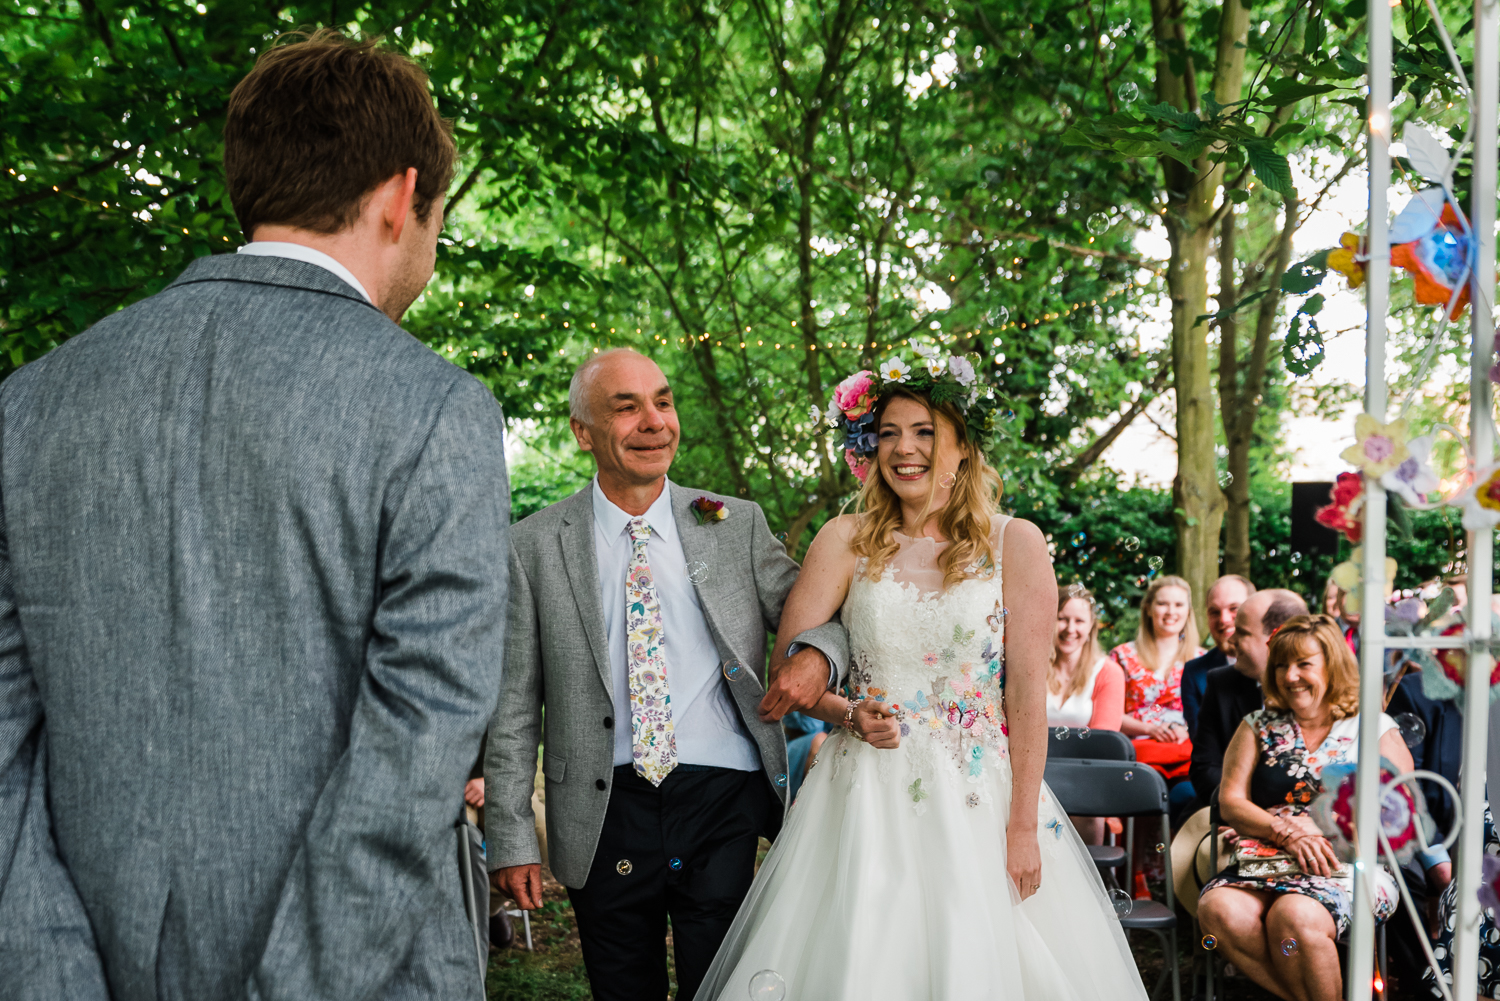 Bride smiling at her husband at their woodland-themed wedding